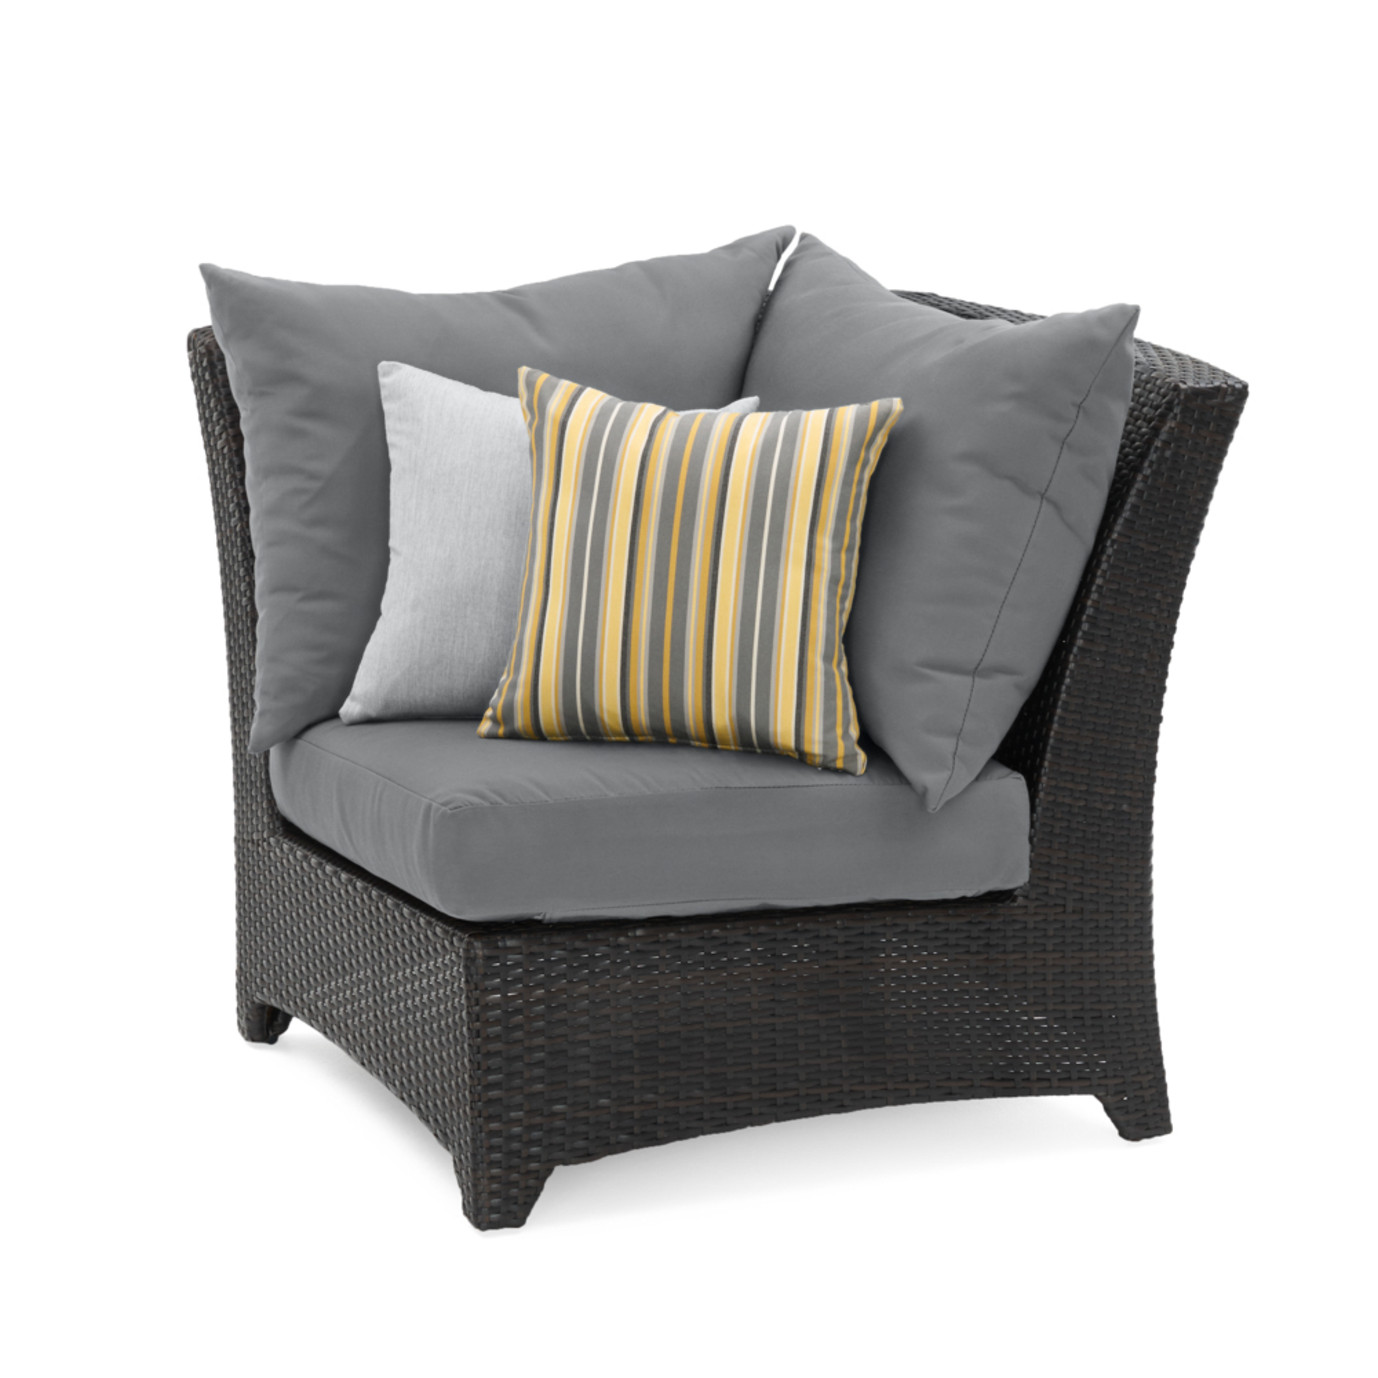 Deco™ Corner Chair - Charcoal Grey